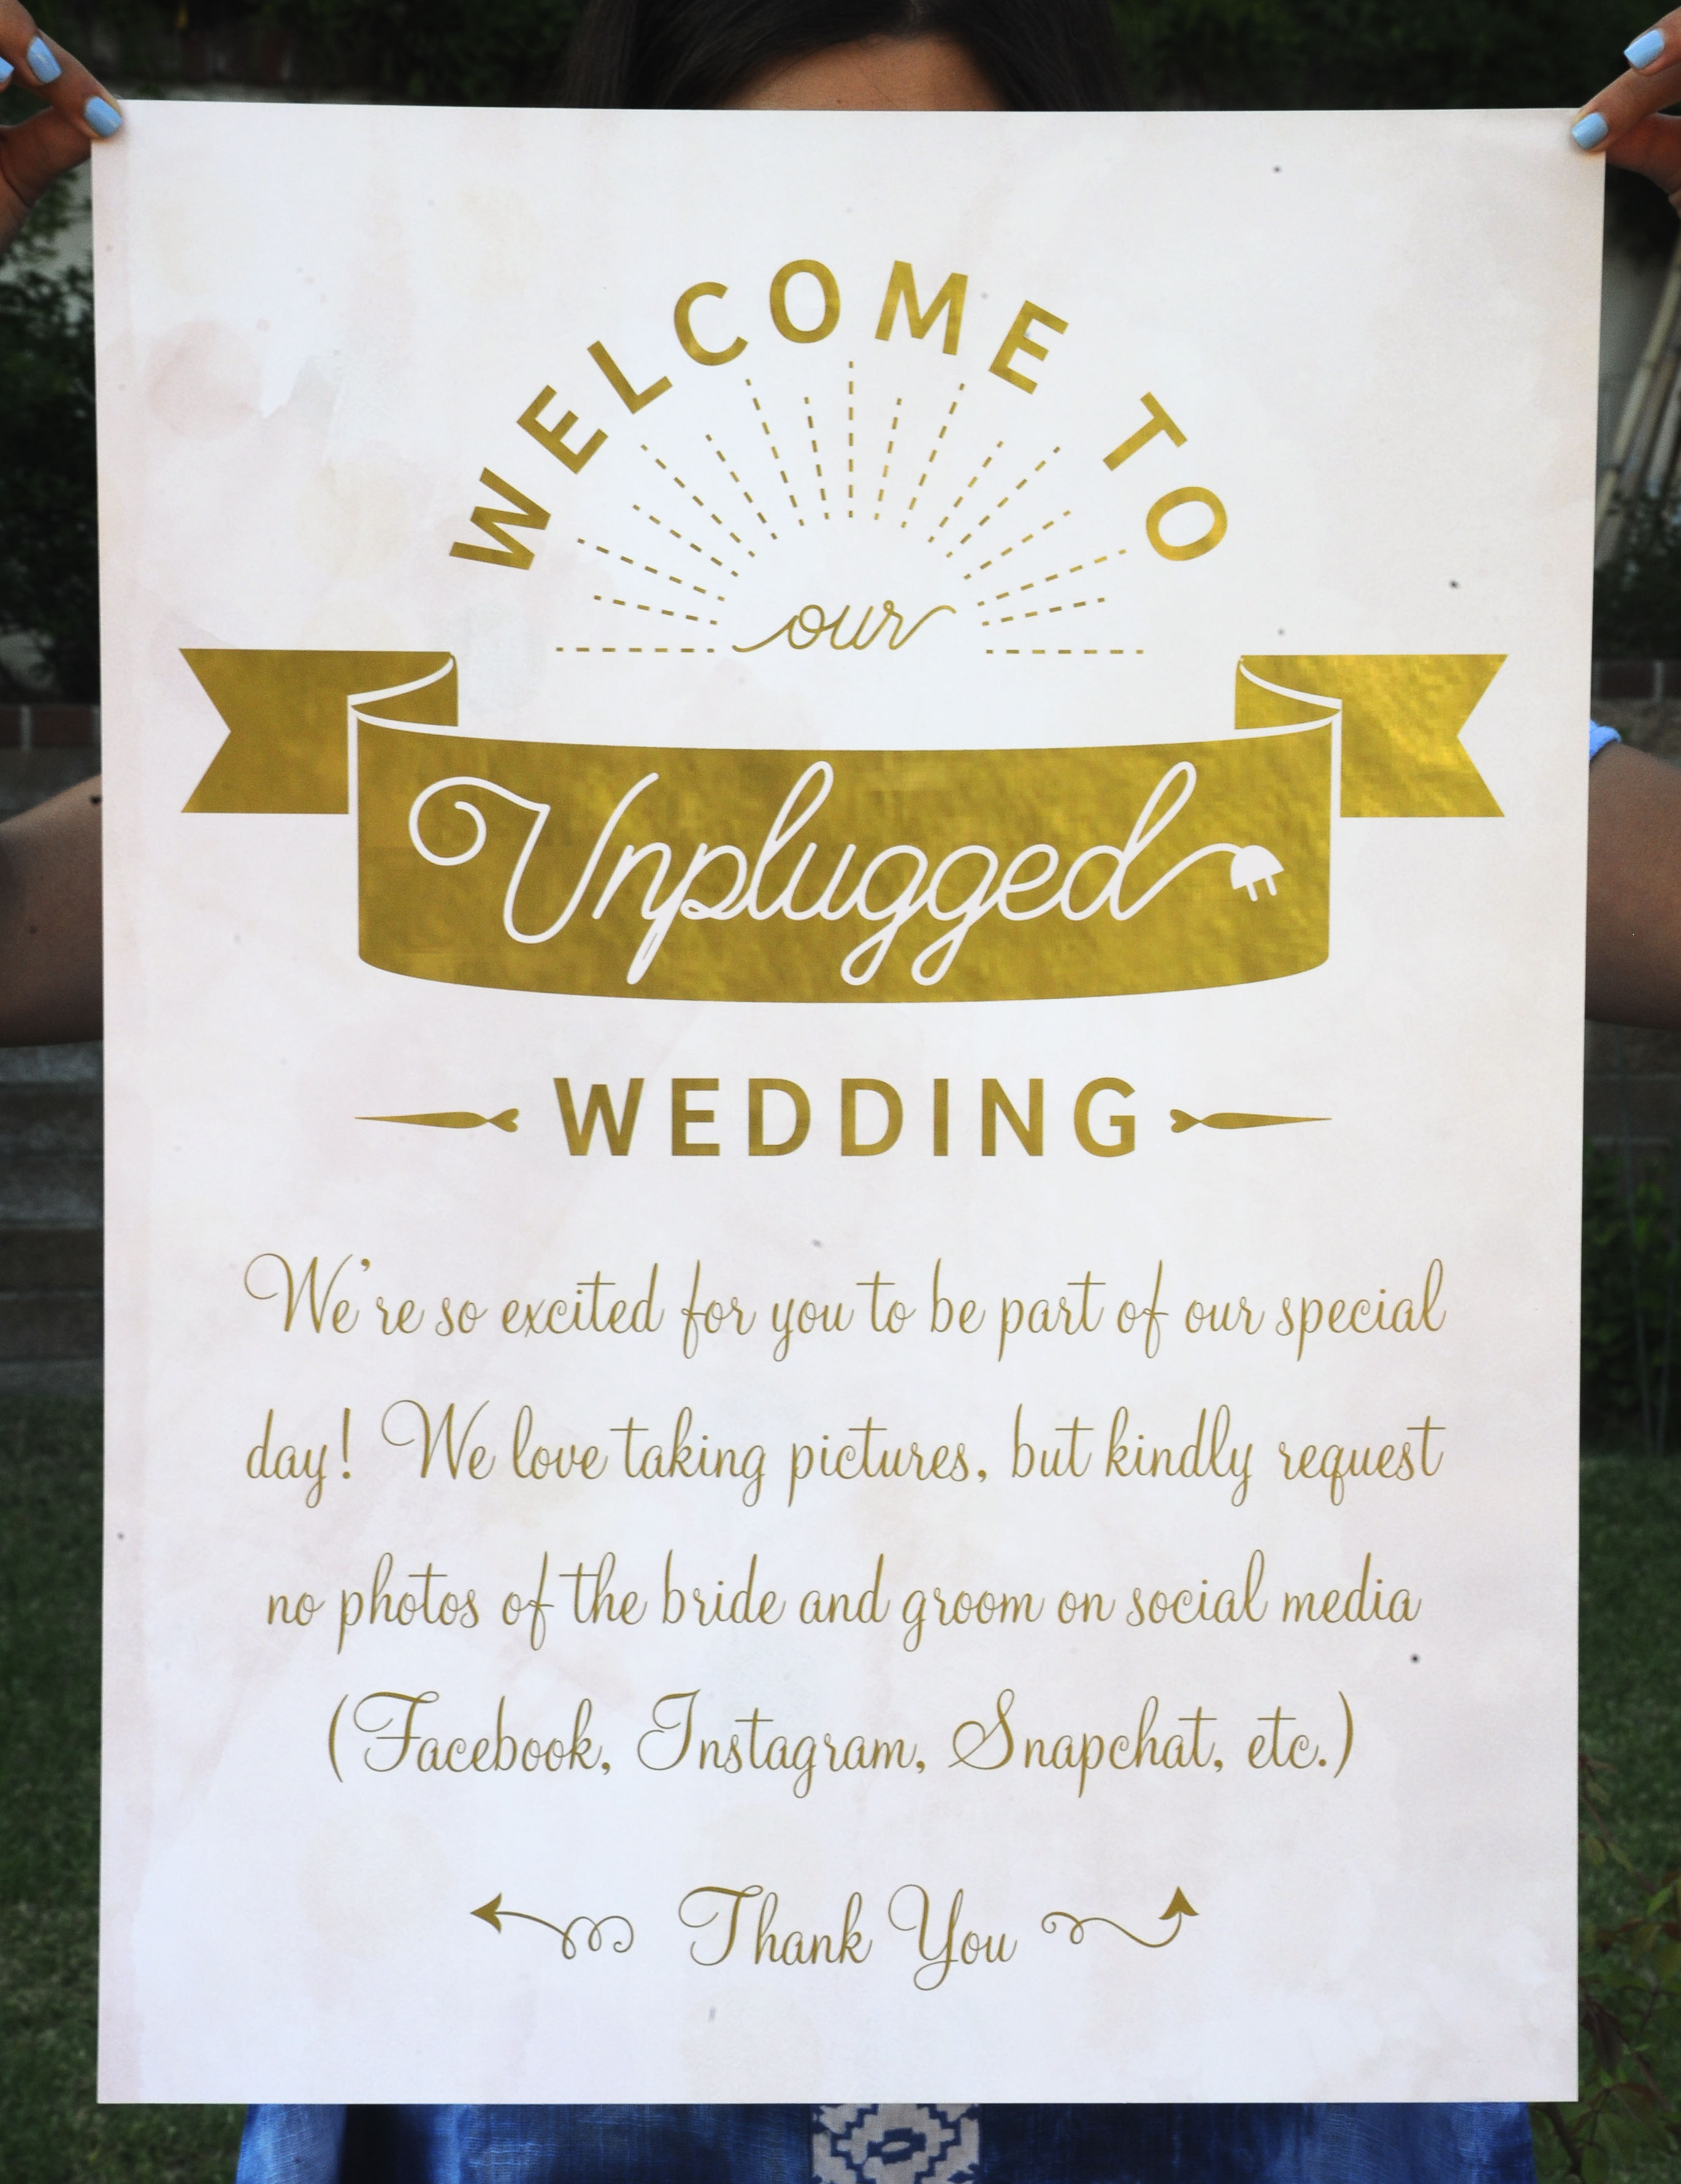 Unplugged_Wedding_Web_2.jpg